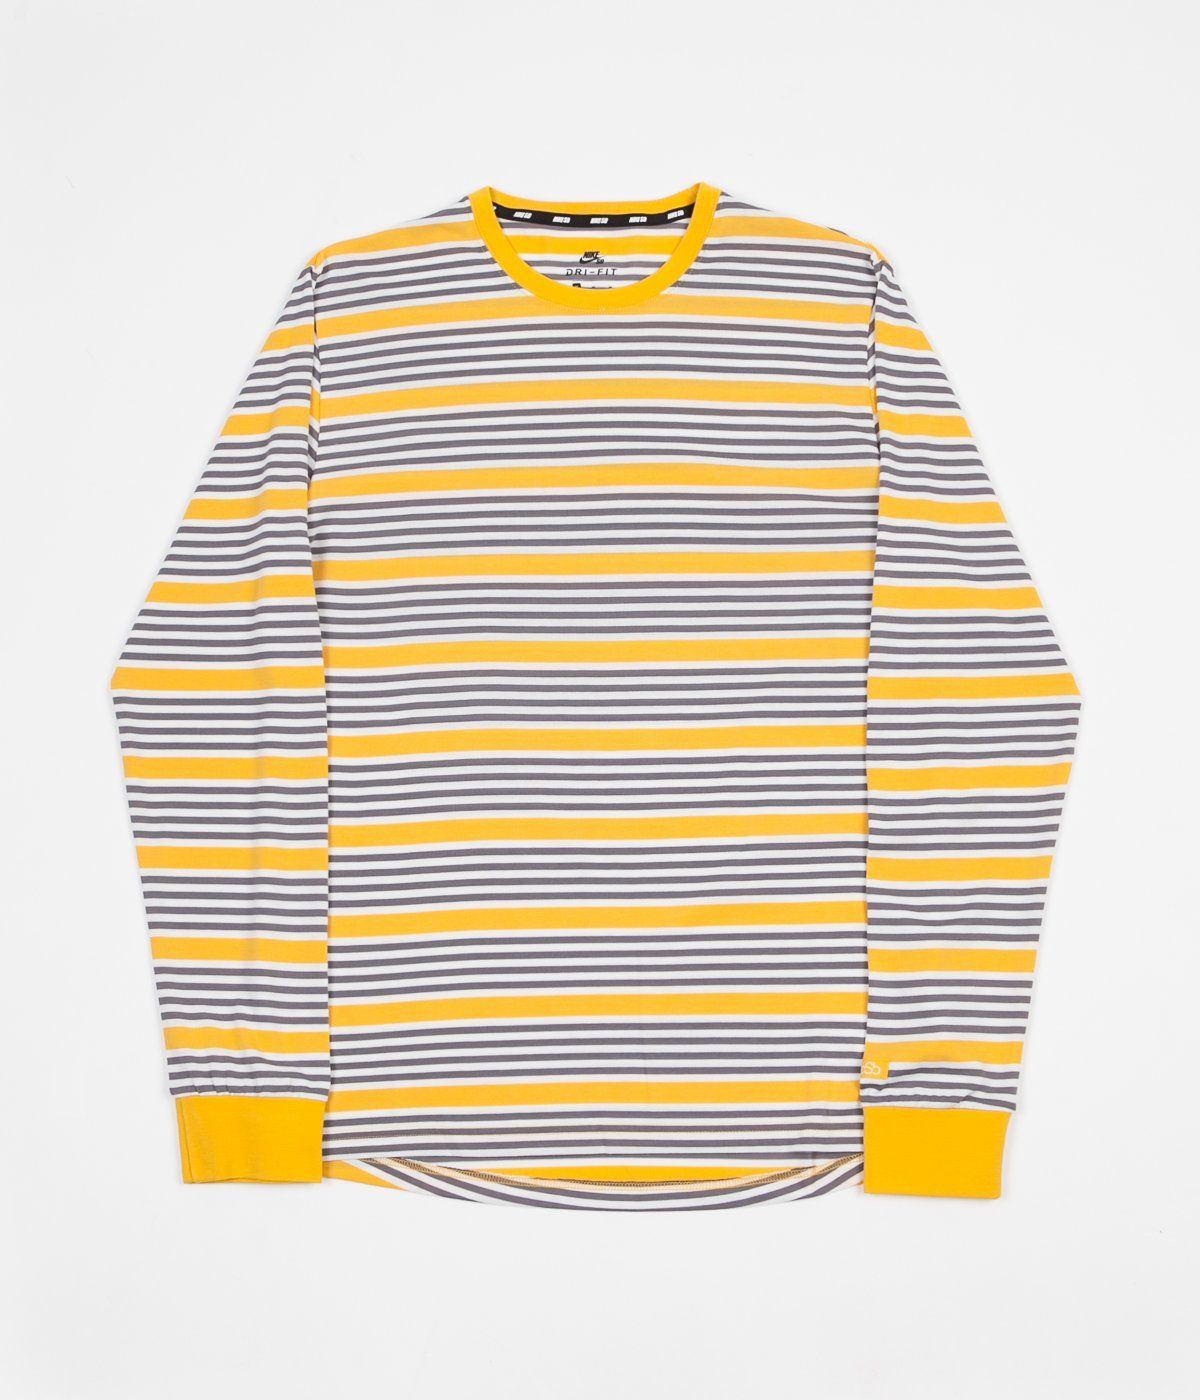 Nike SB Stripe Long Sleeve T-Shirt - Yellow Ochre   Yellow Ochre ... 3a0884808